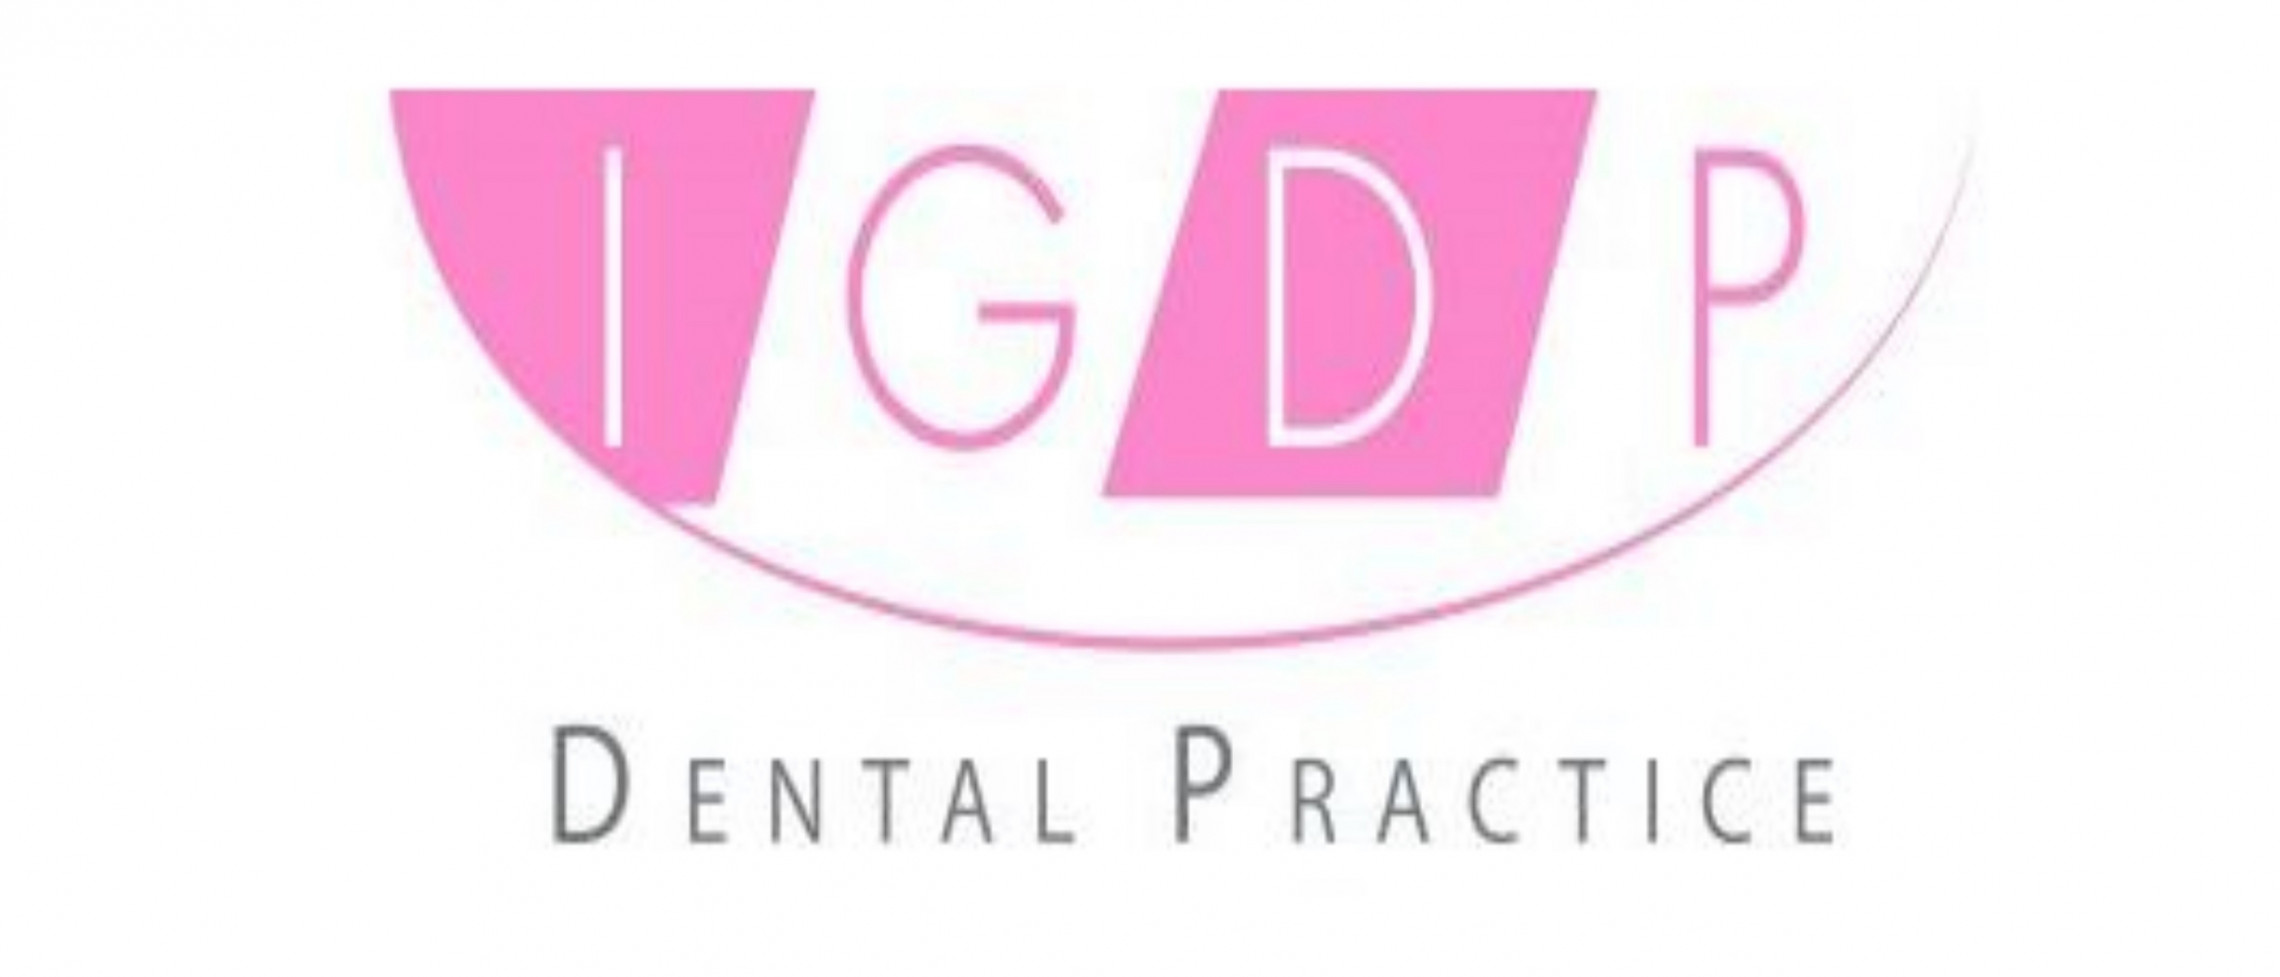 Islington Green Dental Practice